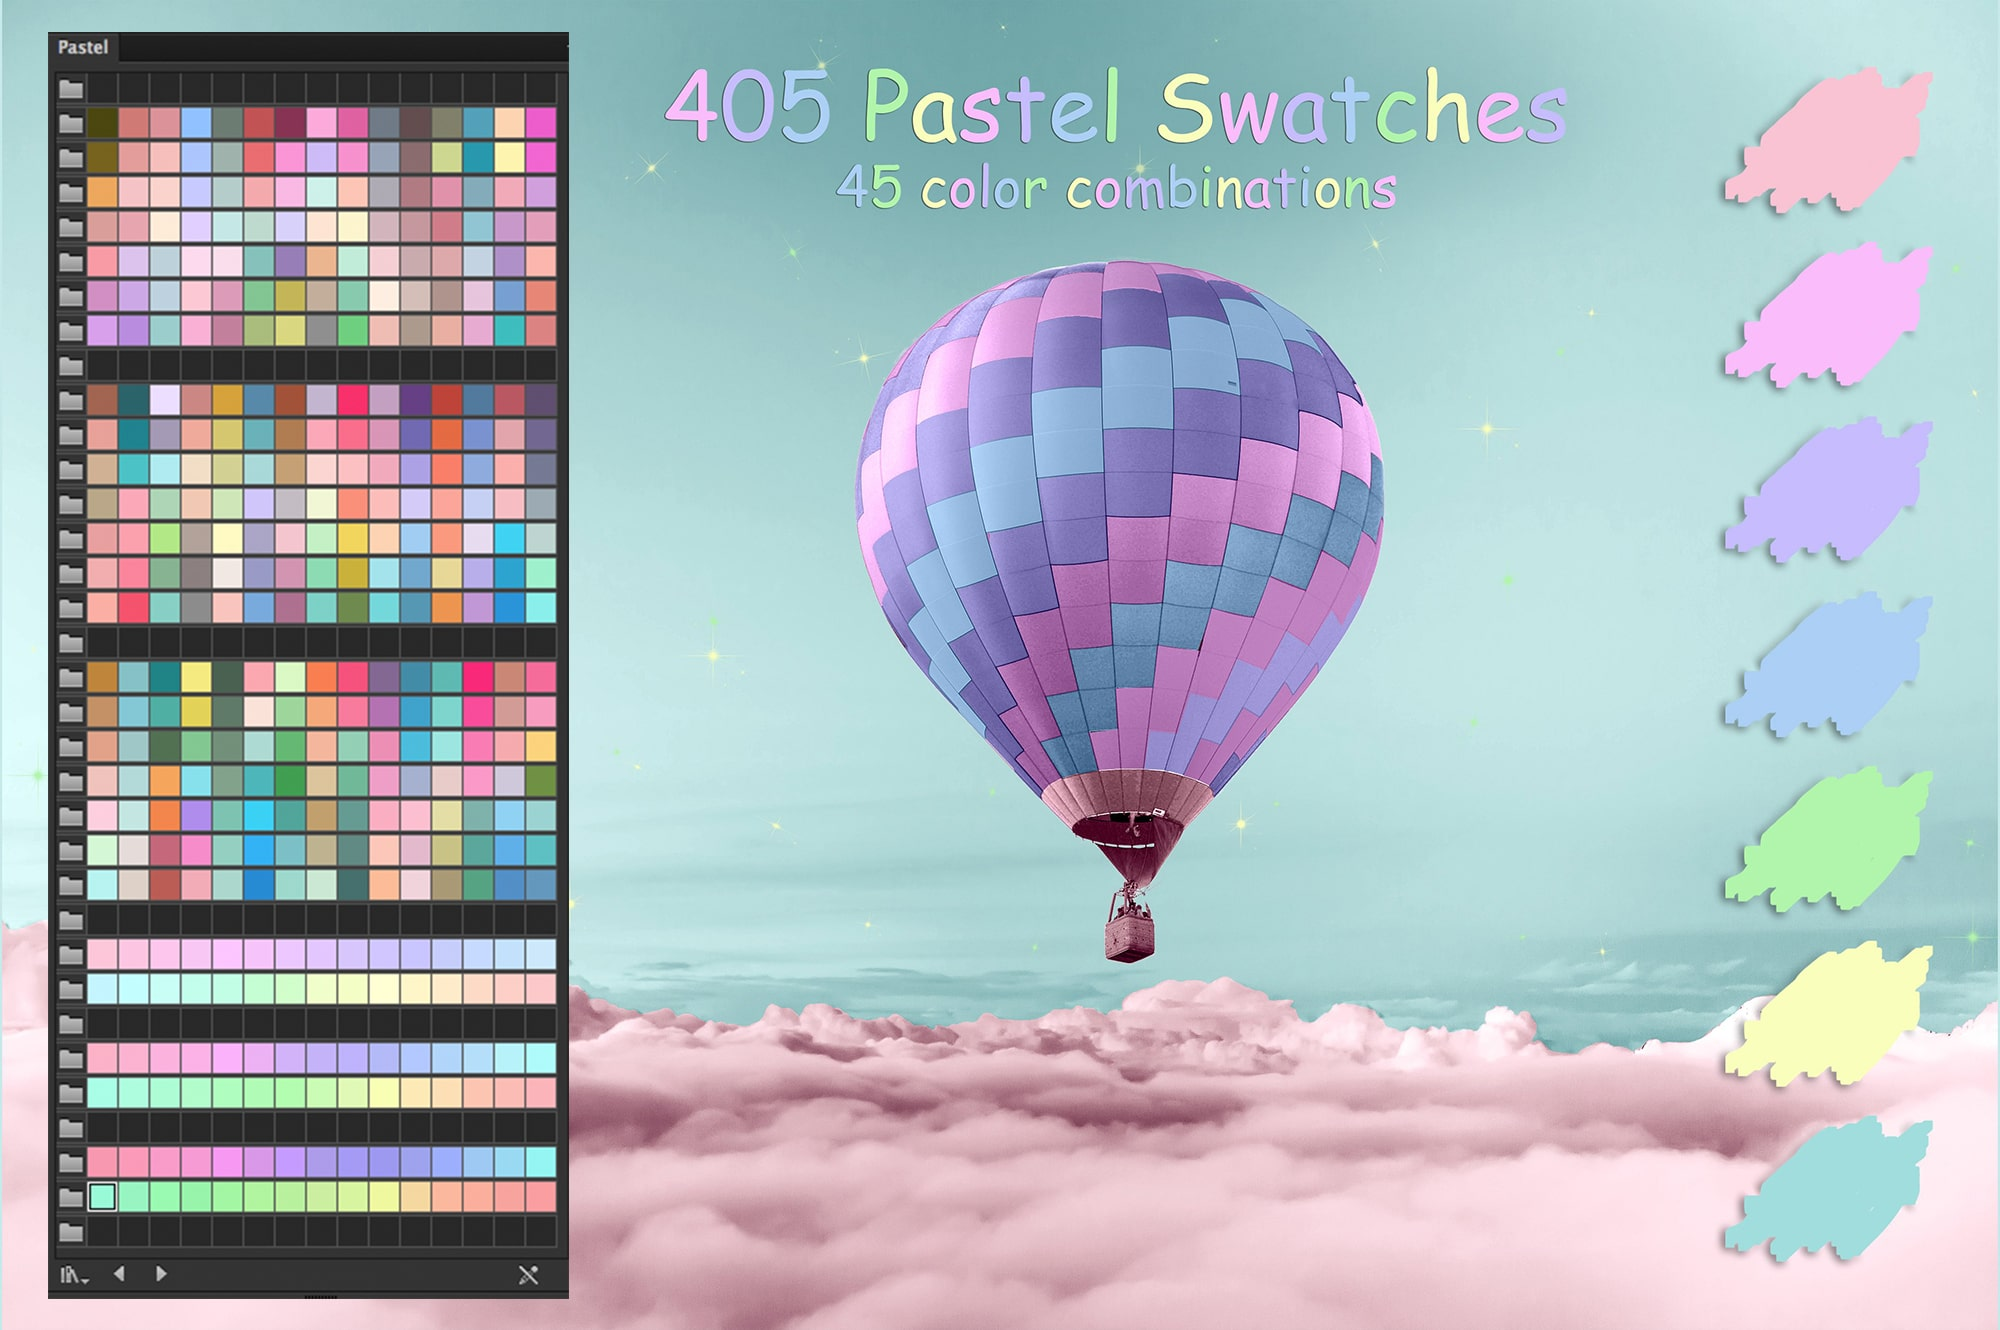 6924 Illustrator Swatches and Digital Painting - 11 min